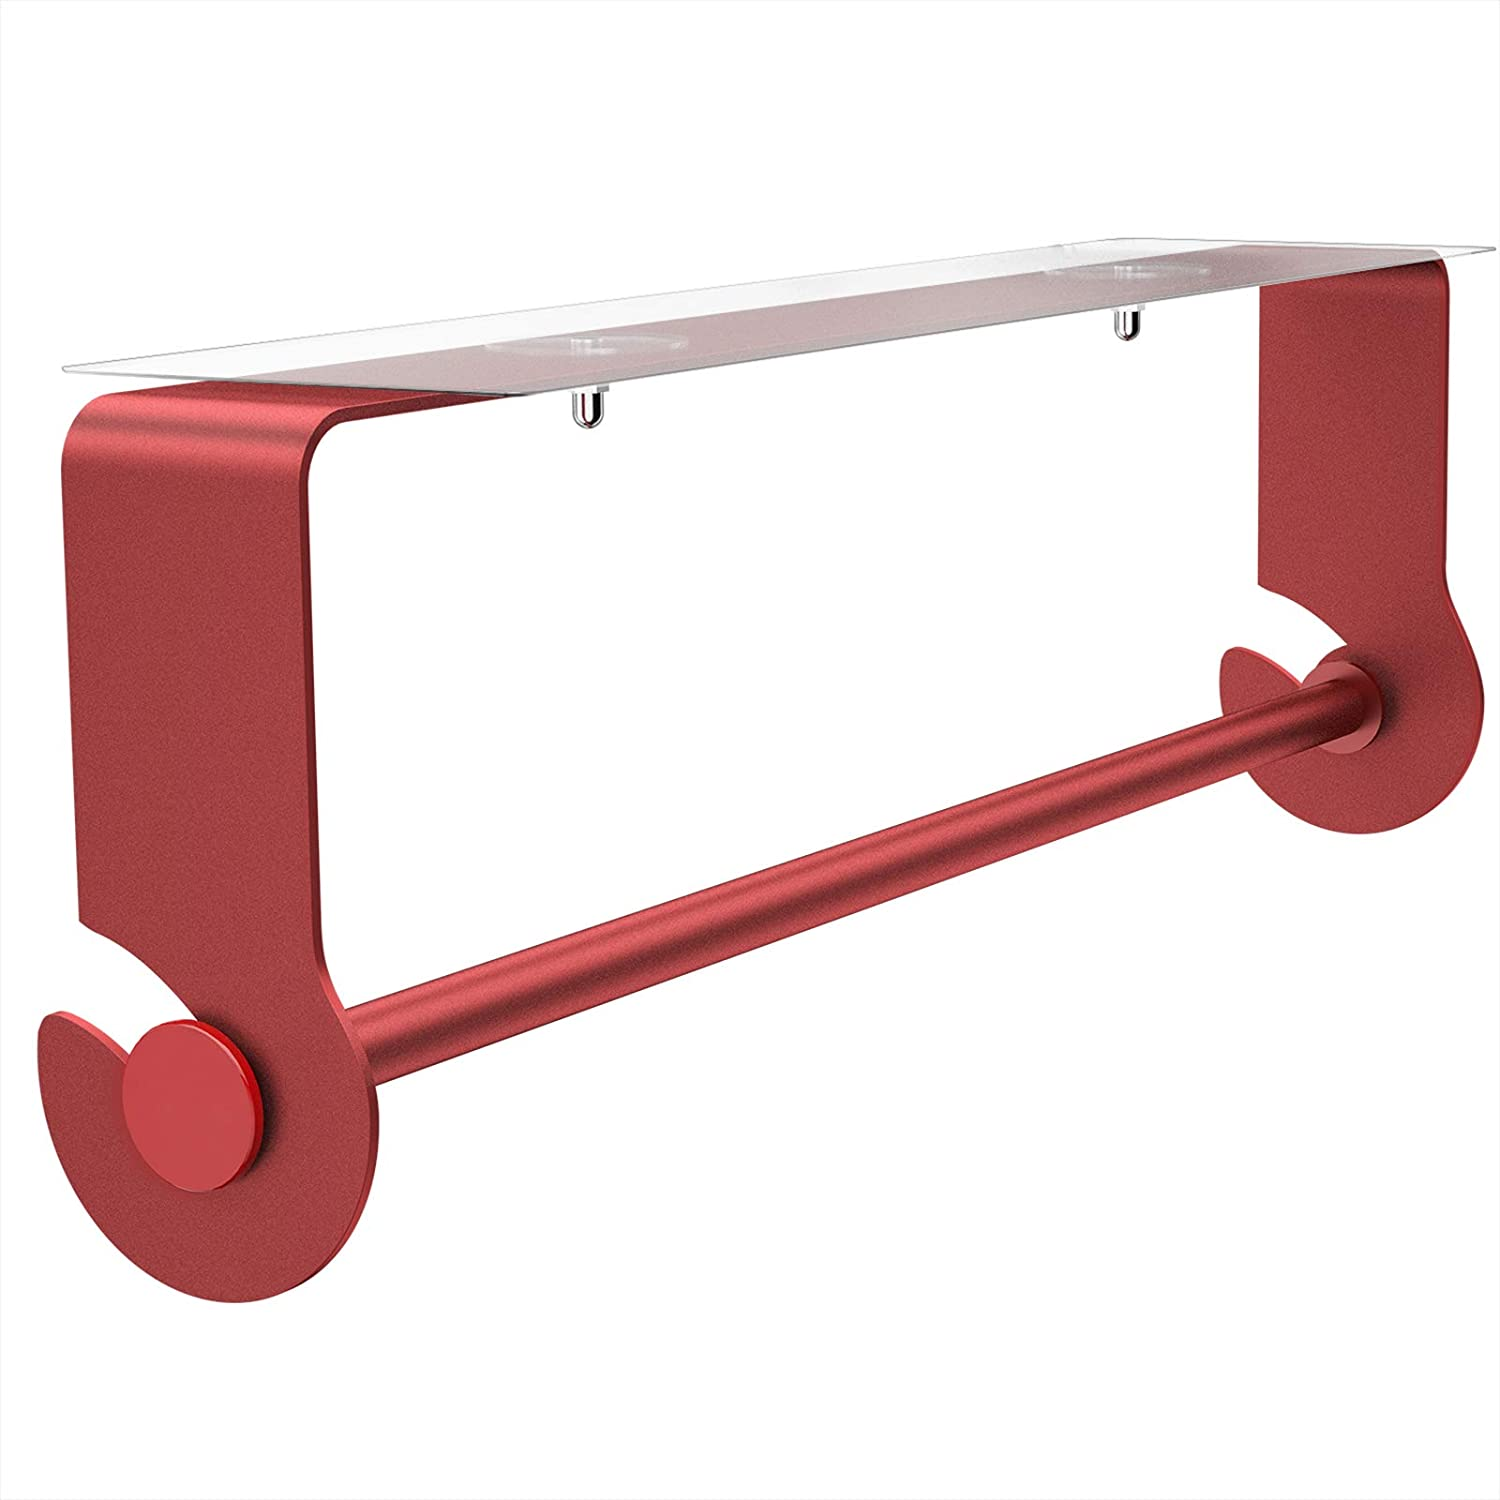 SMARTAKE Paper Towel Holder with Adhesive Under Cabinet, Wall Mounted & No Drilling, Rustproof Paper Towel Holder for Home Kitchen, Easy Tear, Red